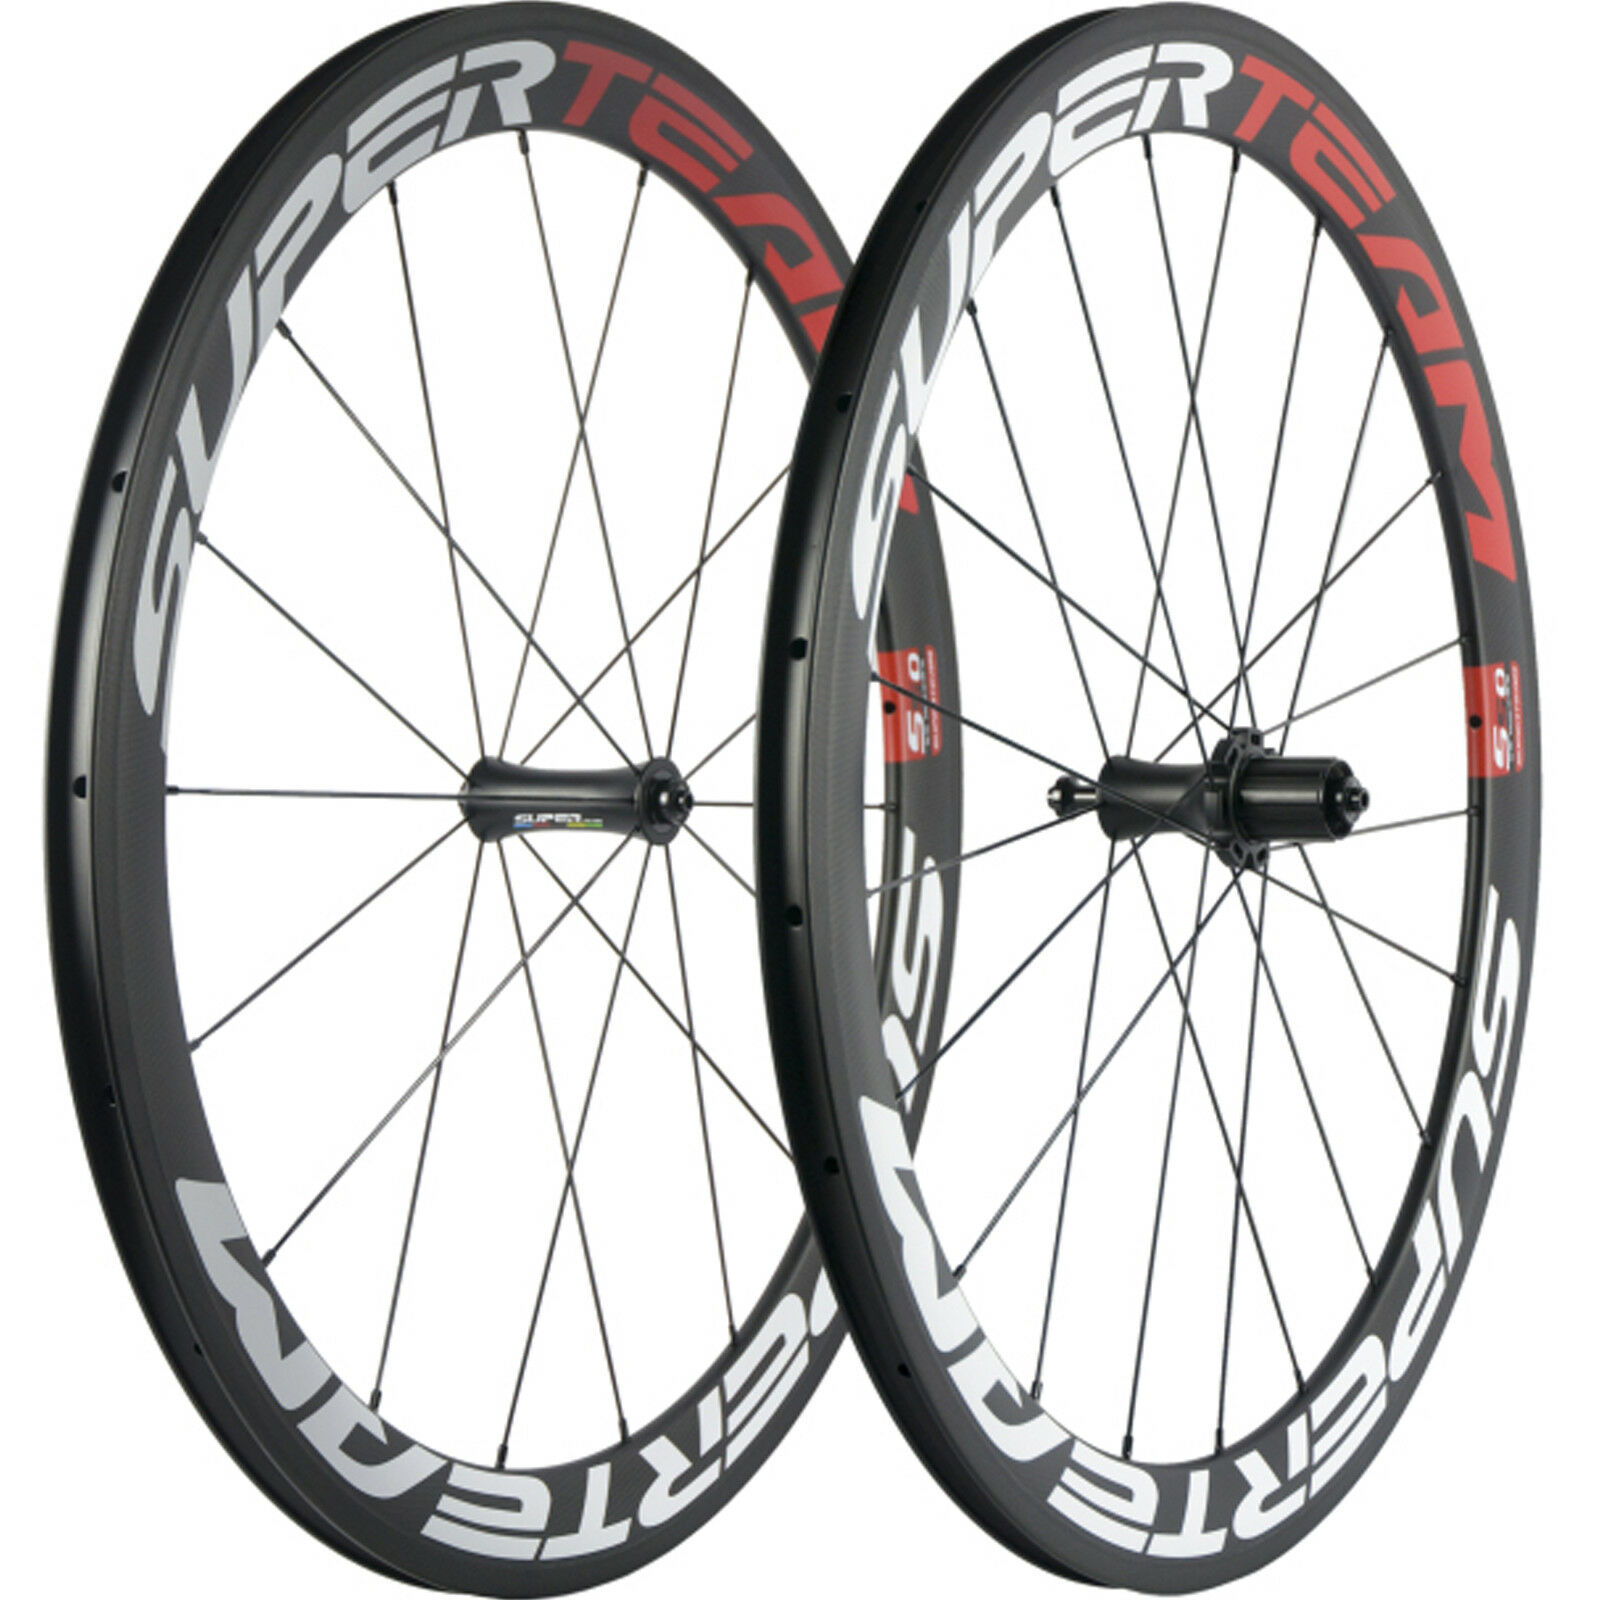 SUPERTEAM Bicycle Carbon Wheelset Clincher 50mm Carbon Road Bike Wheels  R7 Hub  everyday low prices